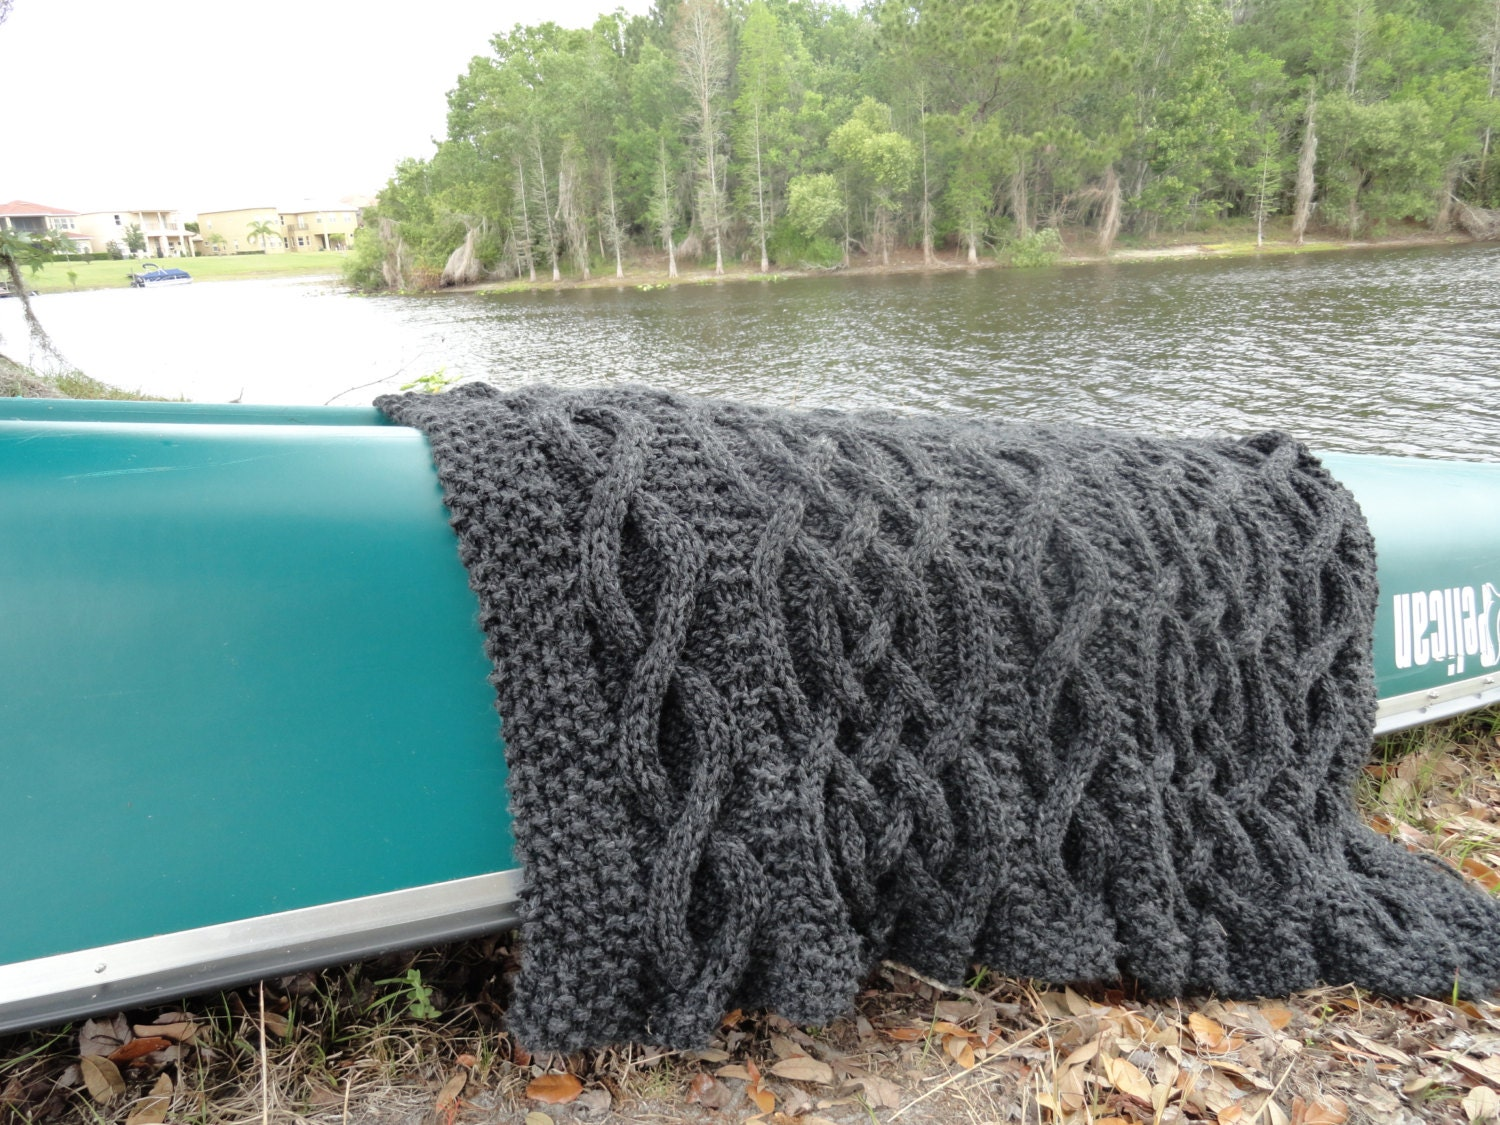 Cable Knit Throw Pattern : cable knit blanket pattern by CraftartStudio on Etsy